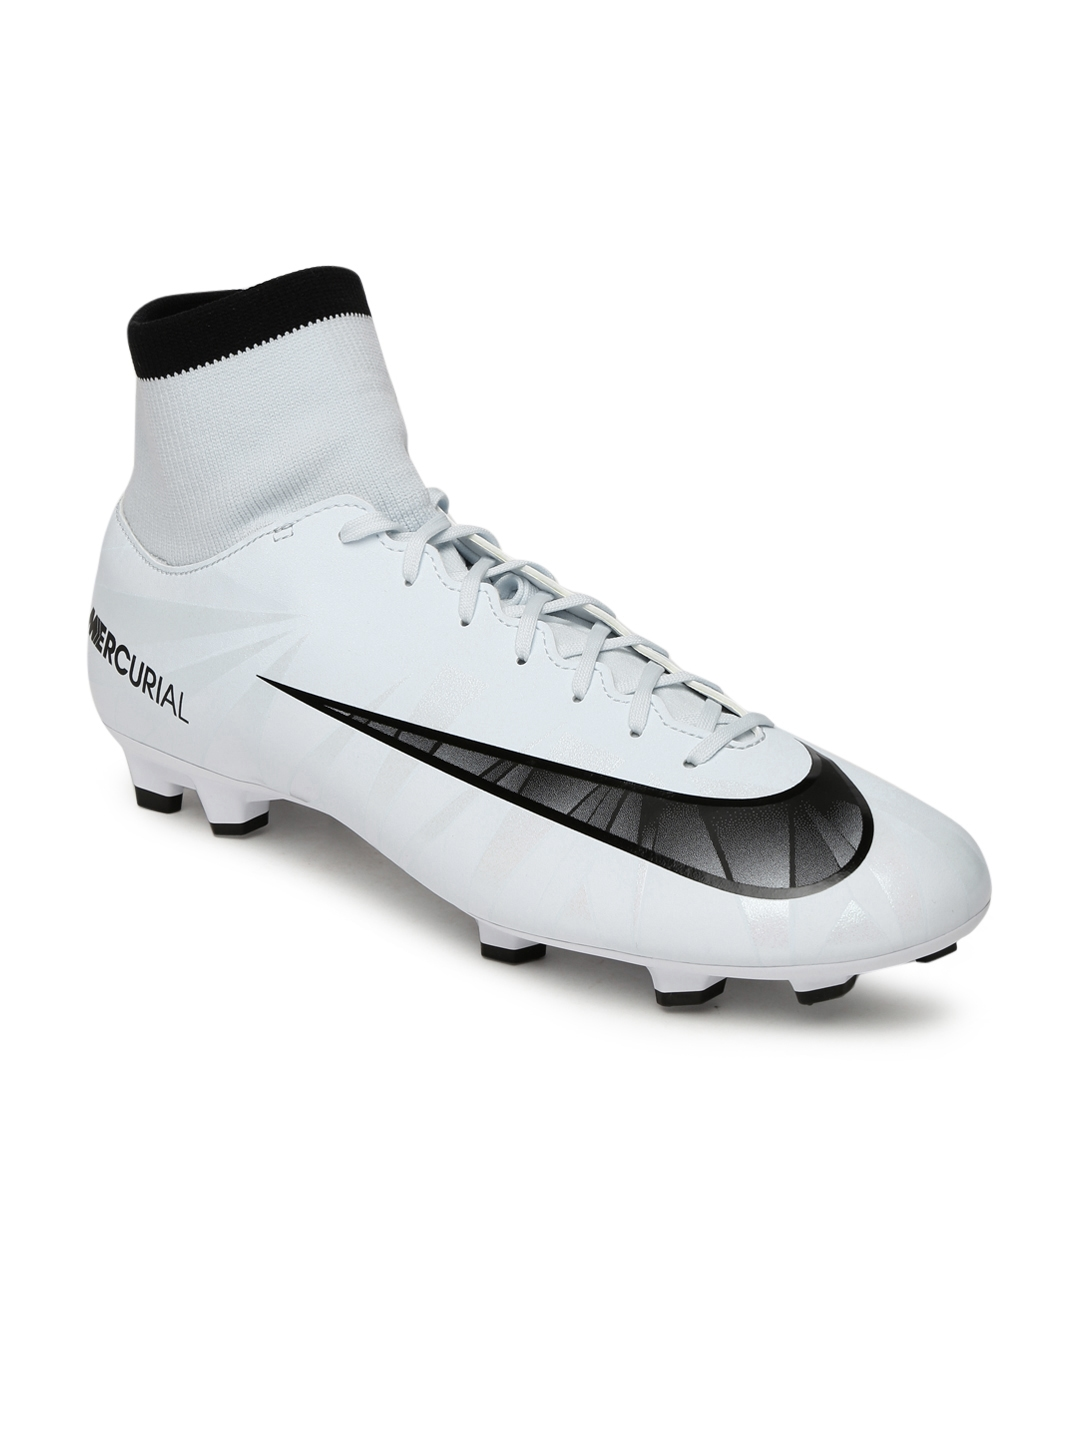 Buy Nike Men White Synthetic High Top VICTORY VI CR7 Football Shoes ... 05f8dab84154